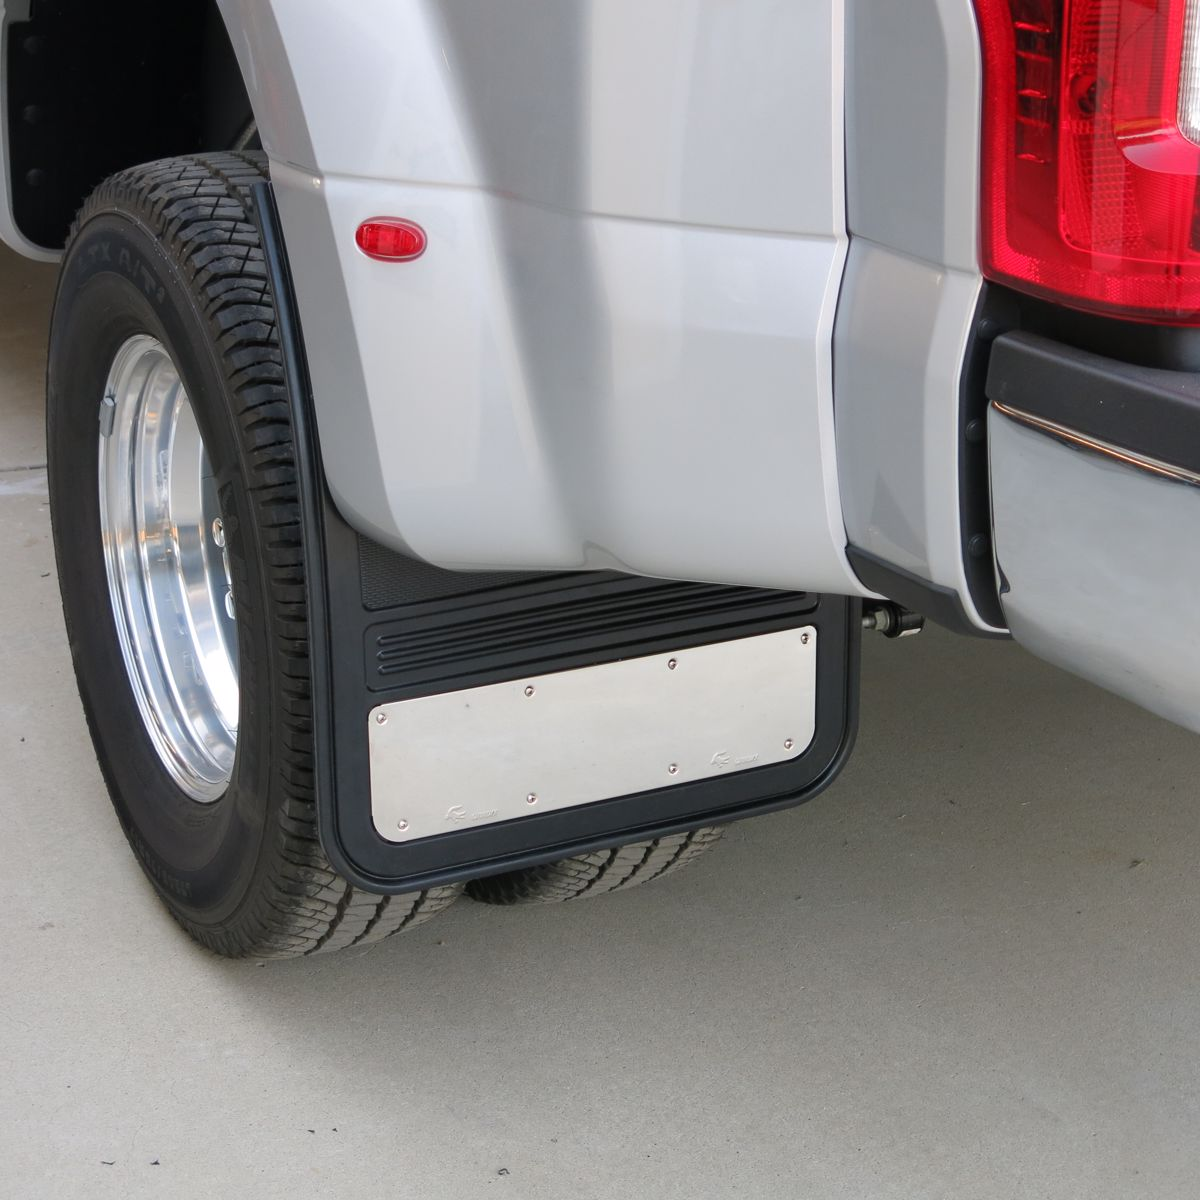 Gatorback Stainless Steel Plate Truck Mud Flaps 19x24 Rear Dually Pair